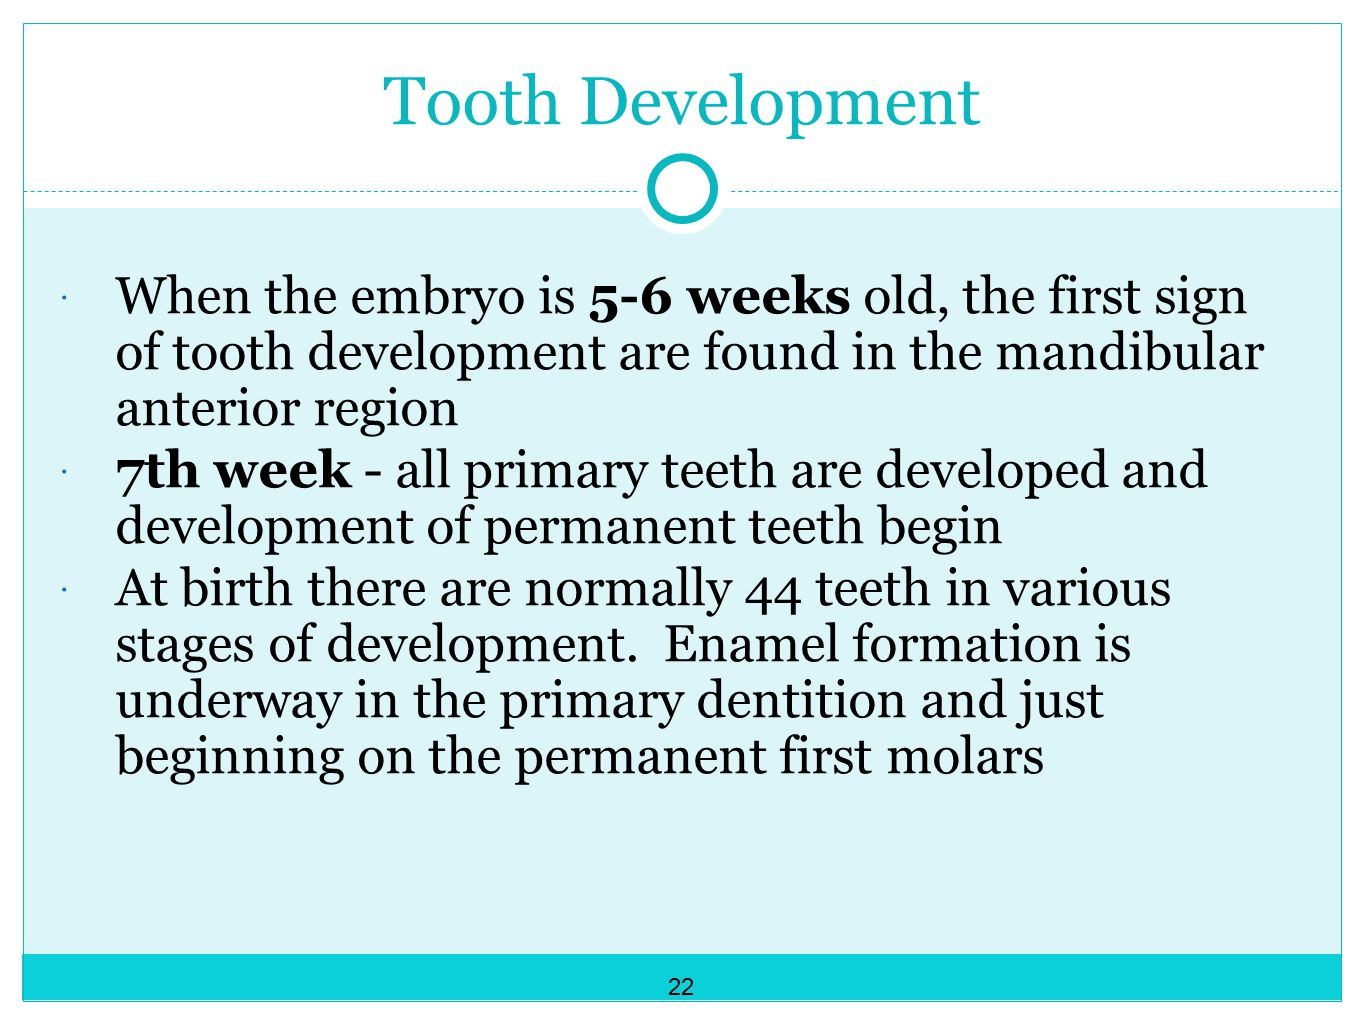 Tooth Development When the embryo is 5-6 weeks old, the first sign of tooth development are found in the mandibular anterior region.